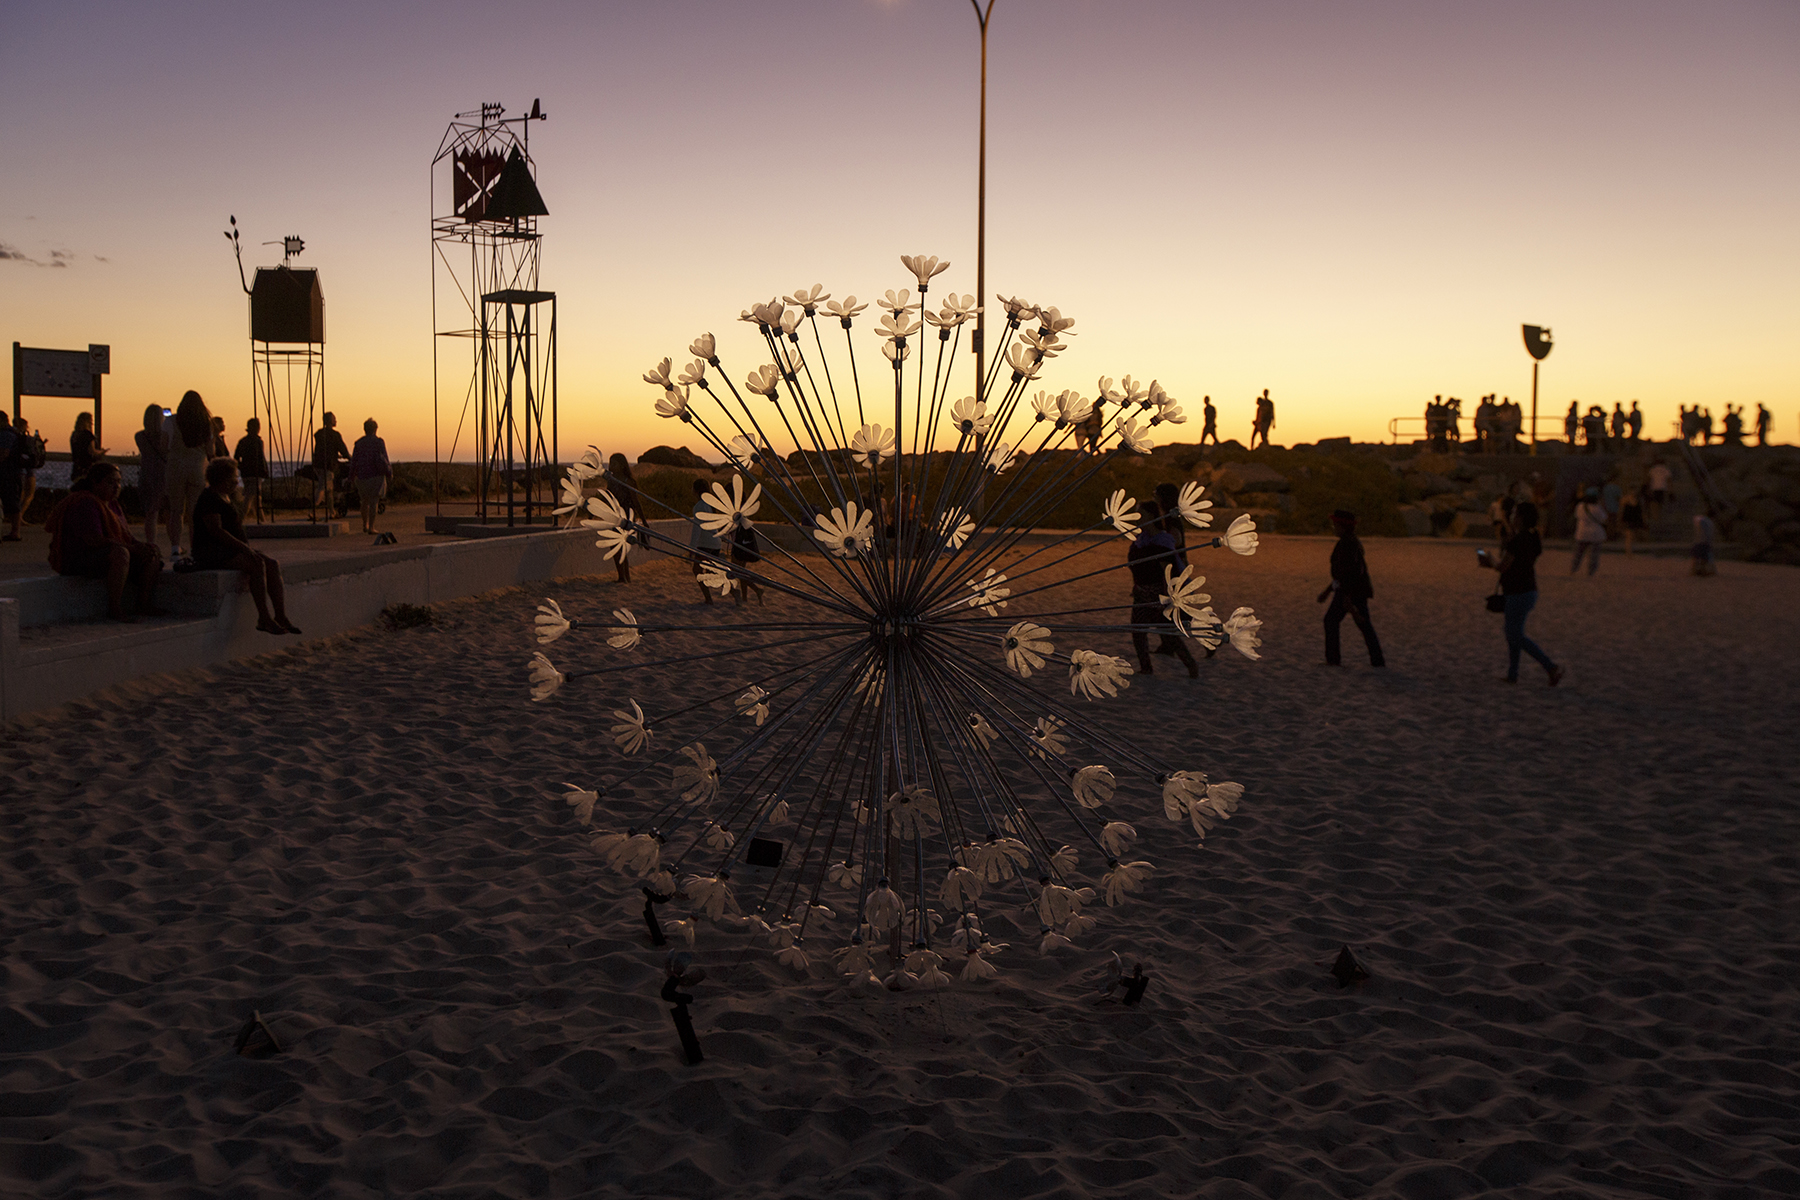 Pamela Lee Brenner & Johannes Muljana (NSW), Bubble, Sculpture by the Sea, Cottesloe 2016. Photo Jessica Wyld